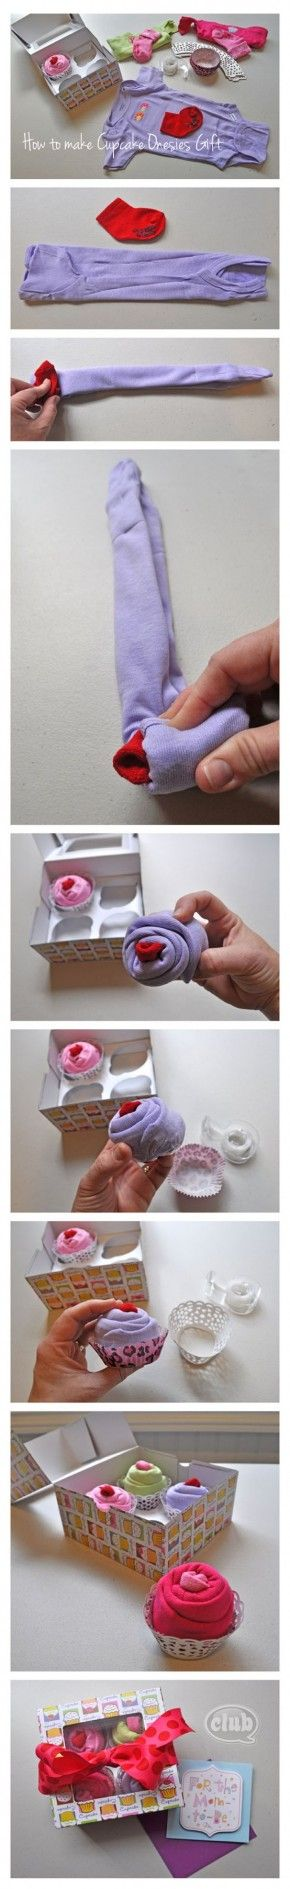 Cupcake packaging idea for baby shower gift. A onesie rolled up with a tiny bright sock tucked int he center. Put in cupcake papers and place in bakery box. So cute!